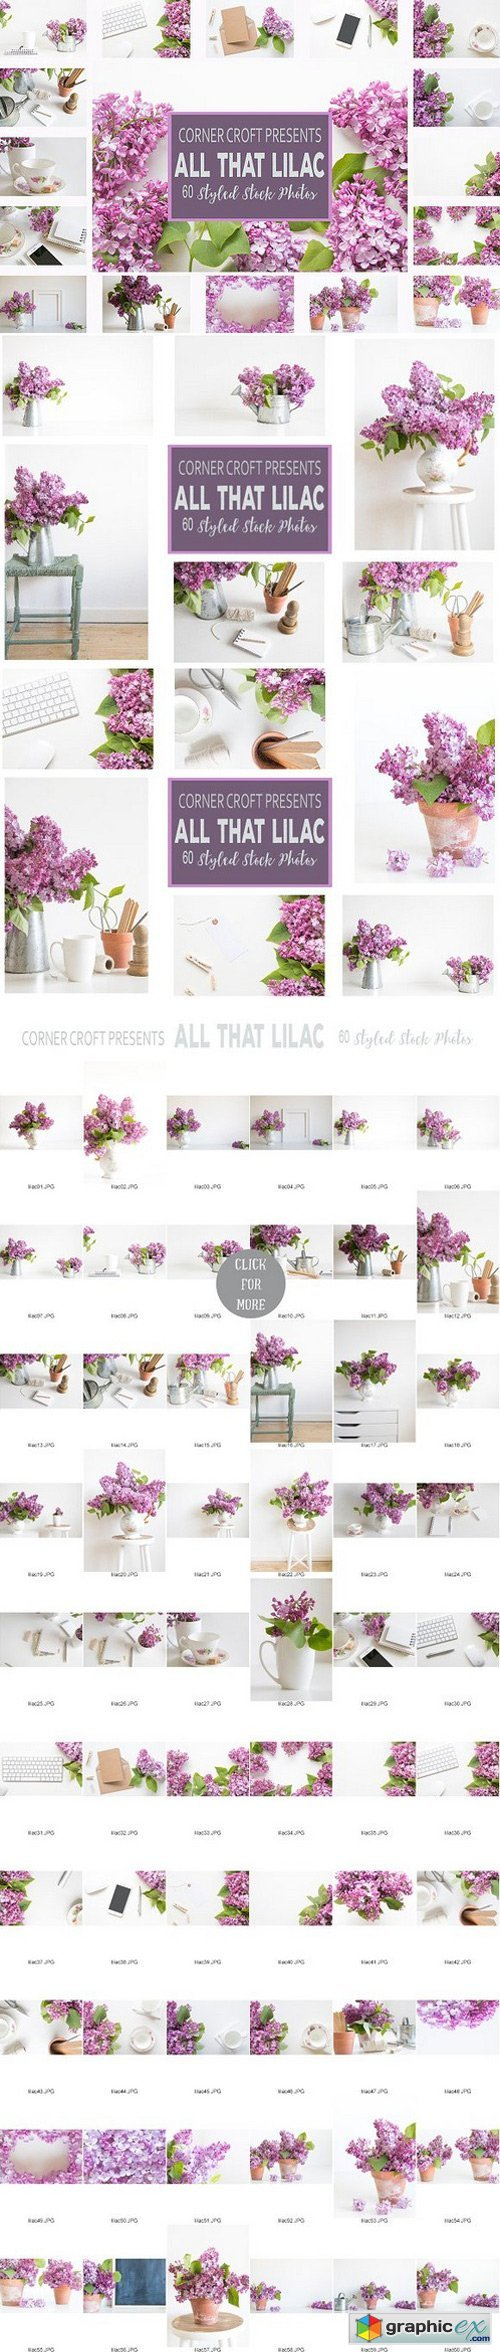 Lilac Styled Stock Photo Bundle